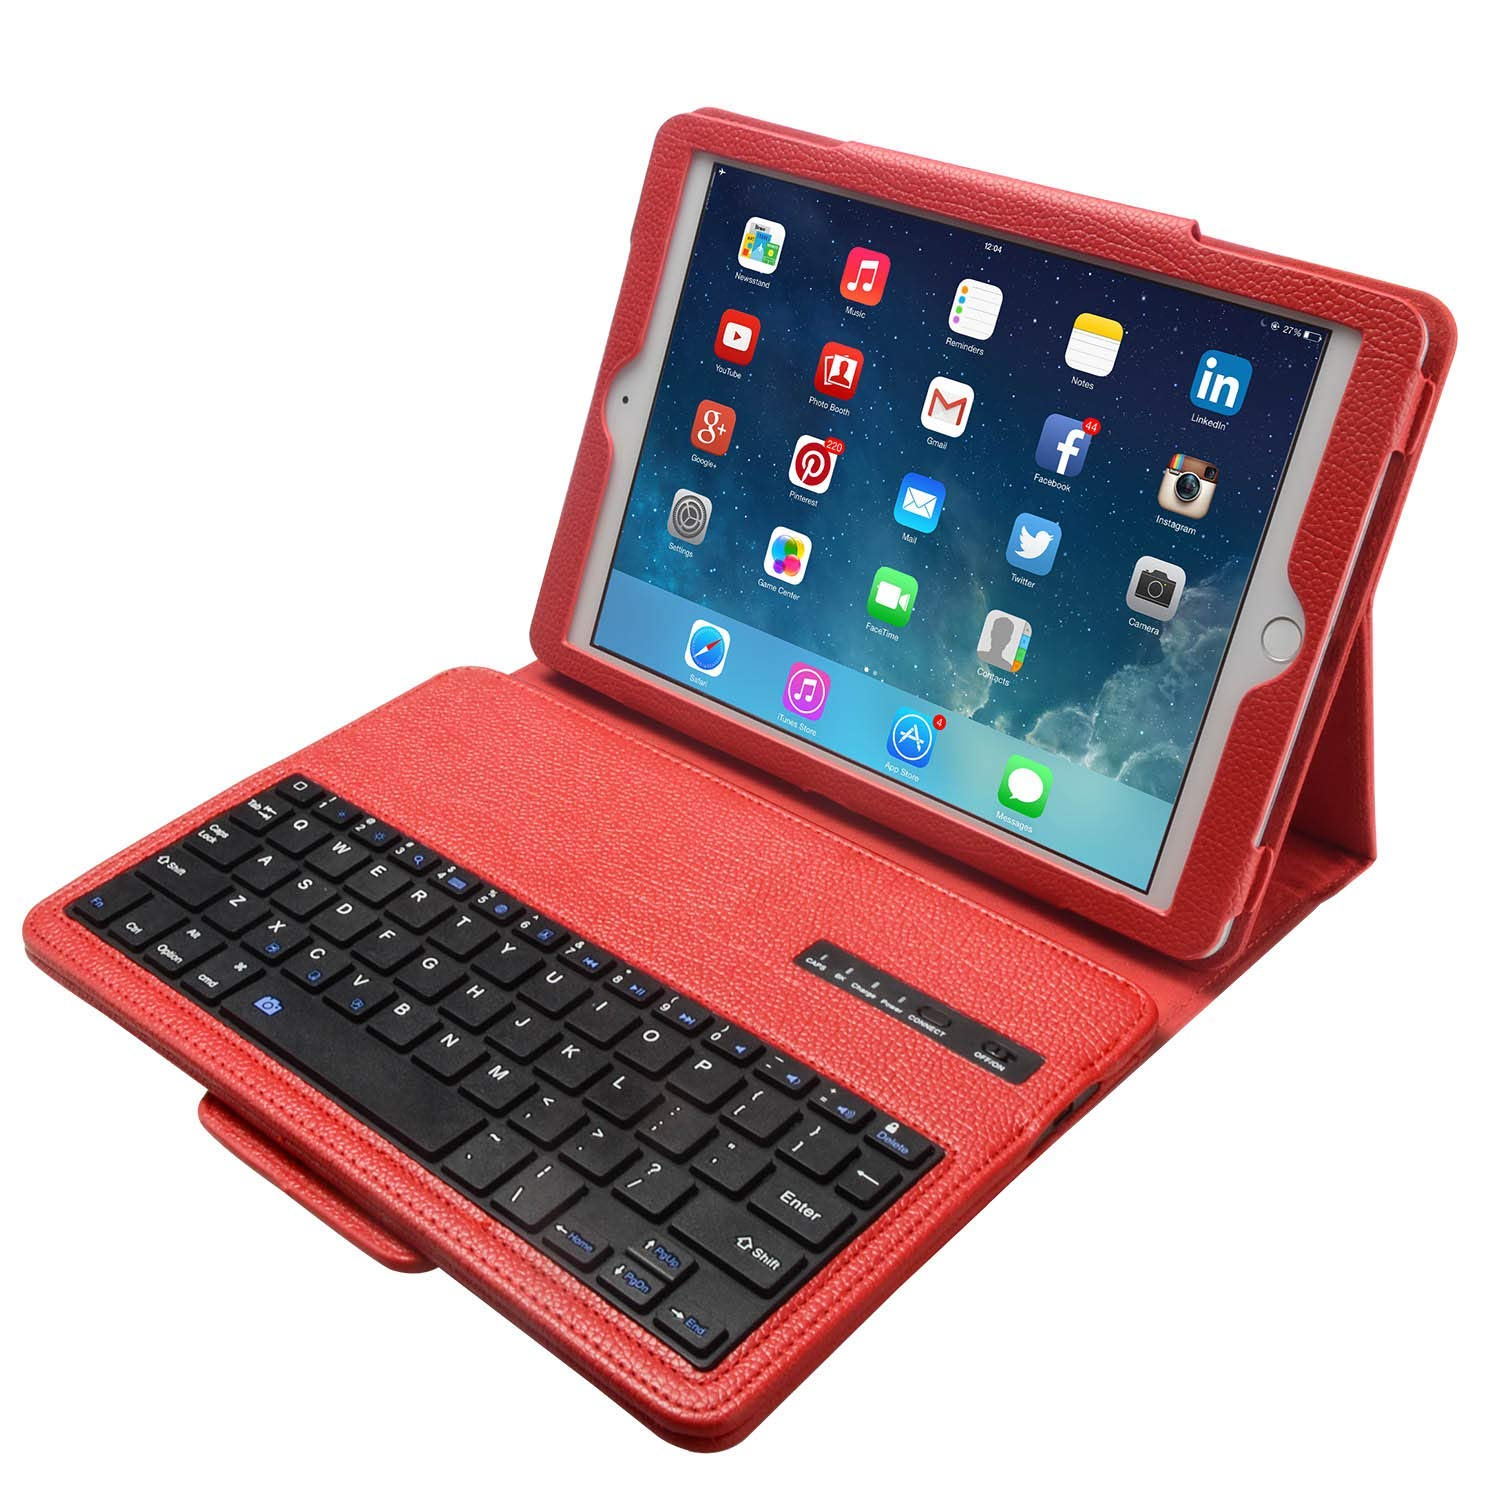 Lightahead Keyboard Case for Apple iPad 2/3/4 Folding Leather Folio Cover with Removable Bluetooth Keyboard for iPad 2/3/4 Tablet (Red)